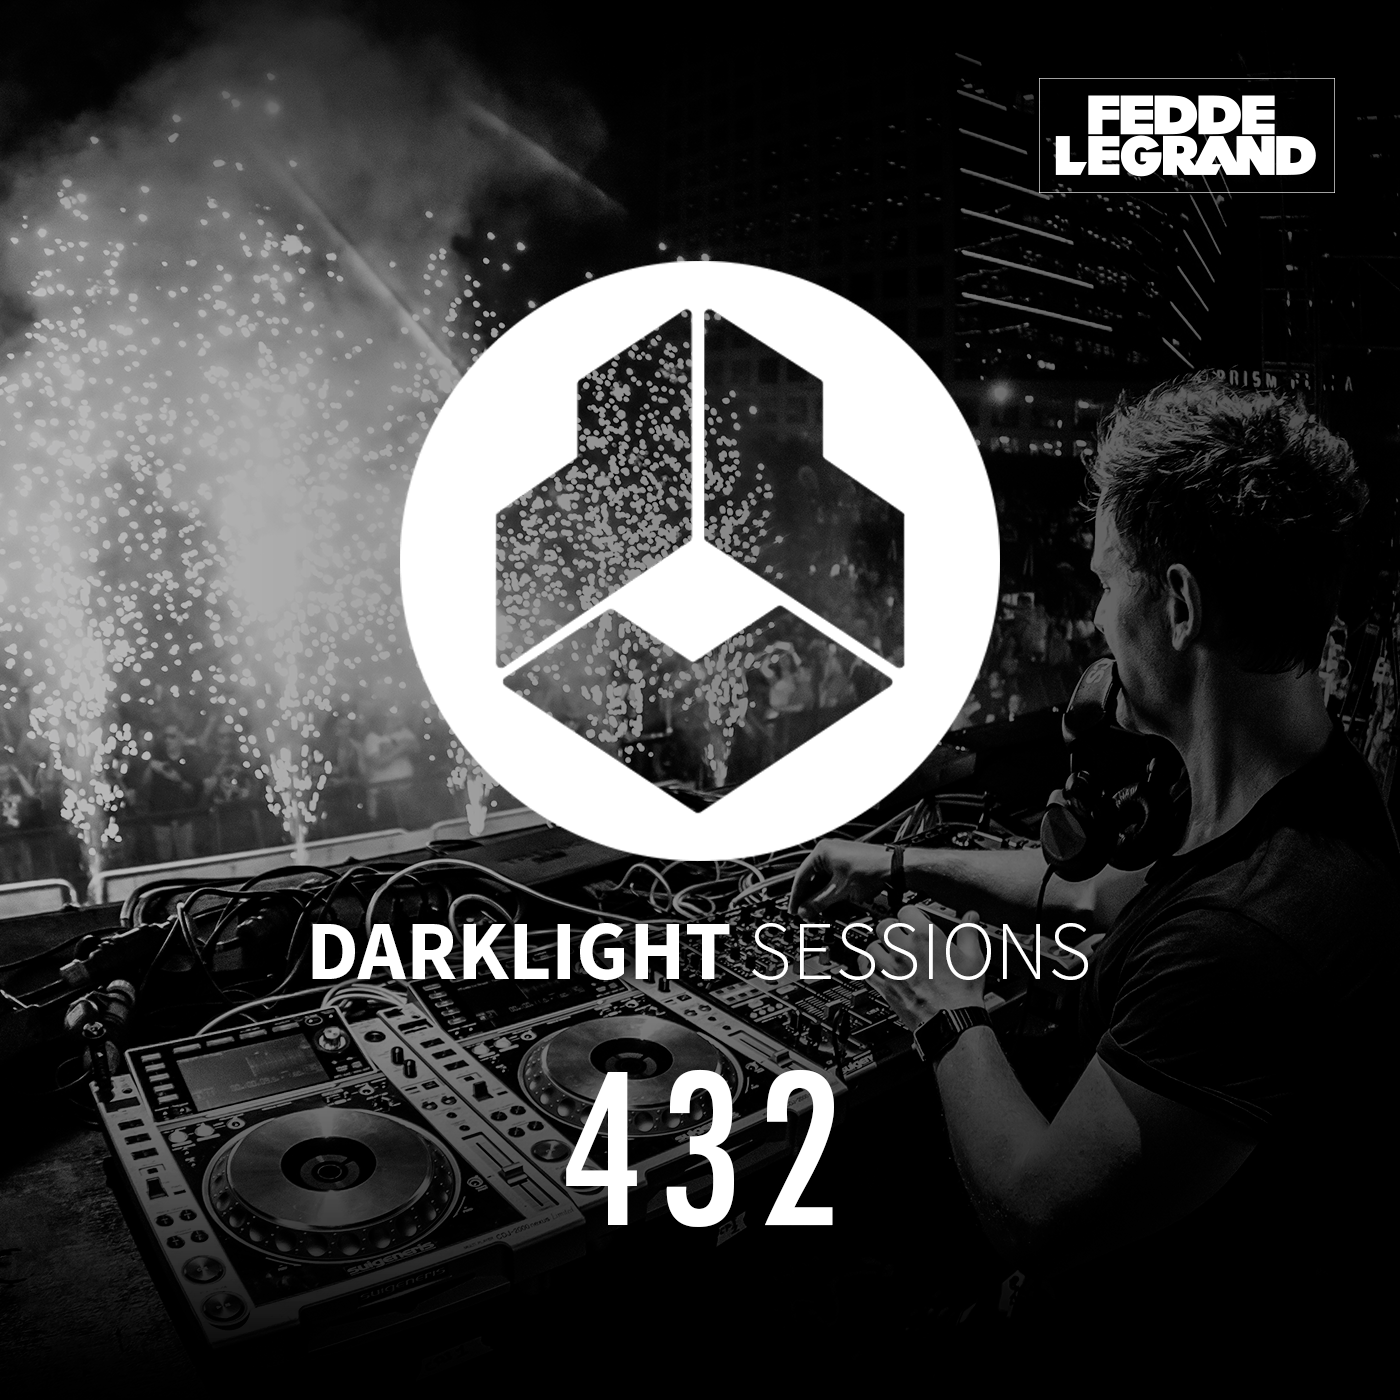 Darklight Sessions 432